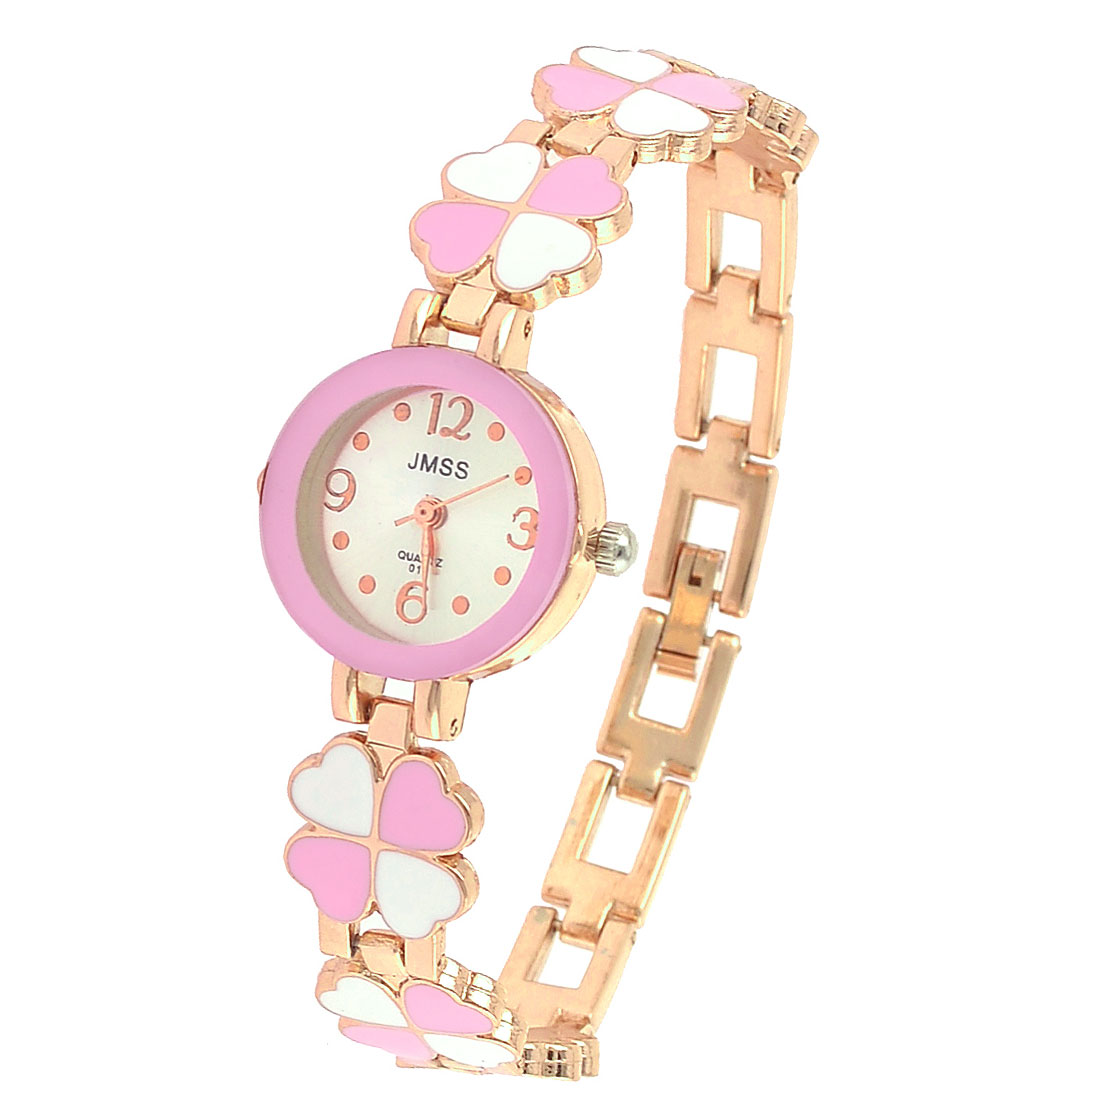 Wrist Ornament Pink White Metal Clover Detail Wristband Watch for Women